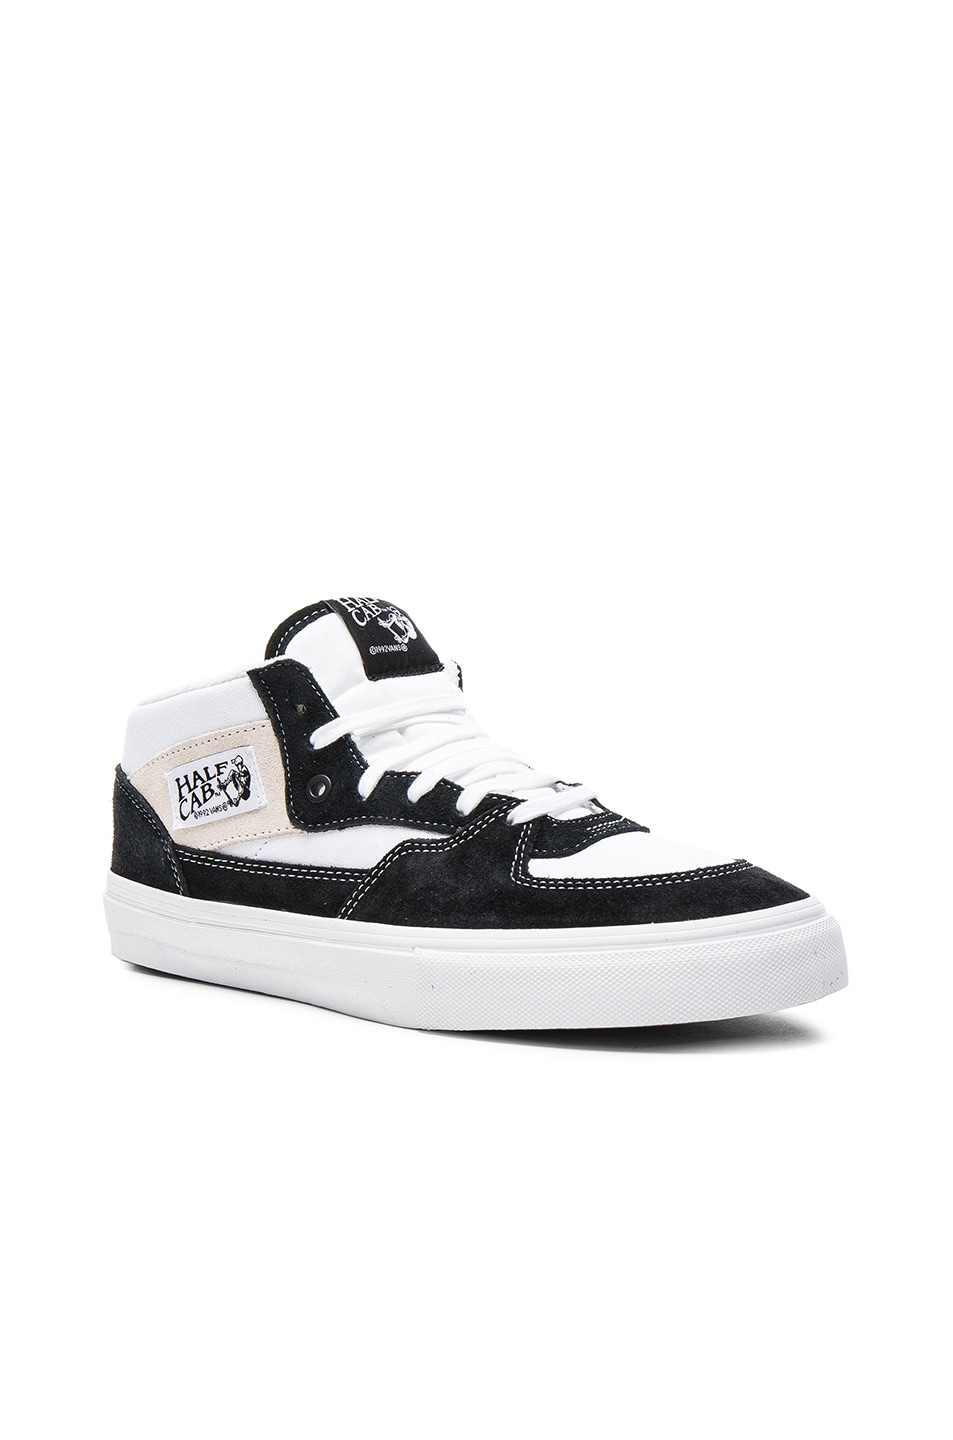 7e7d7ed699ba3e Image 1 of Gosha Rubchinskiy x Vans Half Cab High Sneakers in Black   White